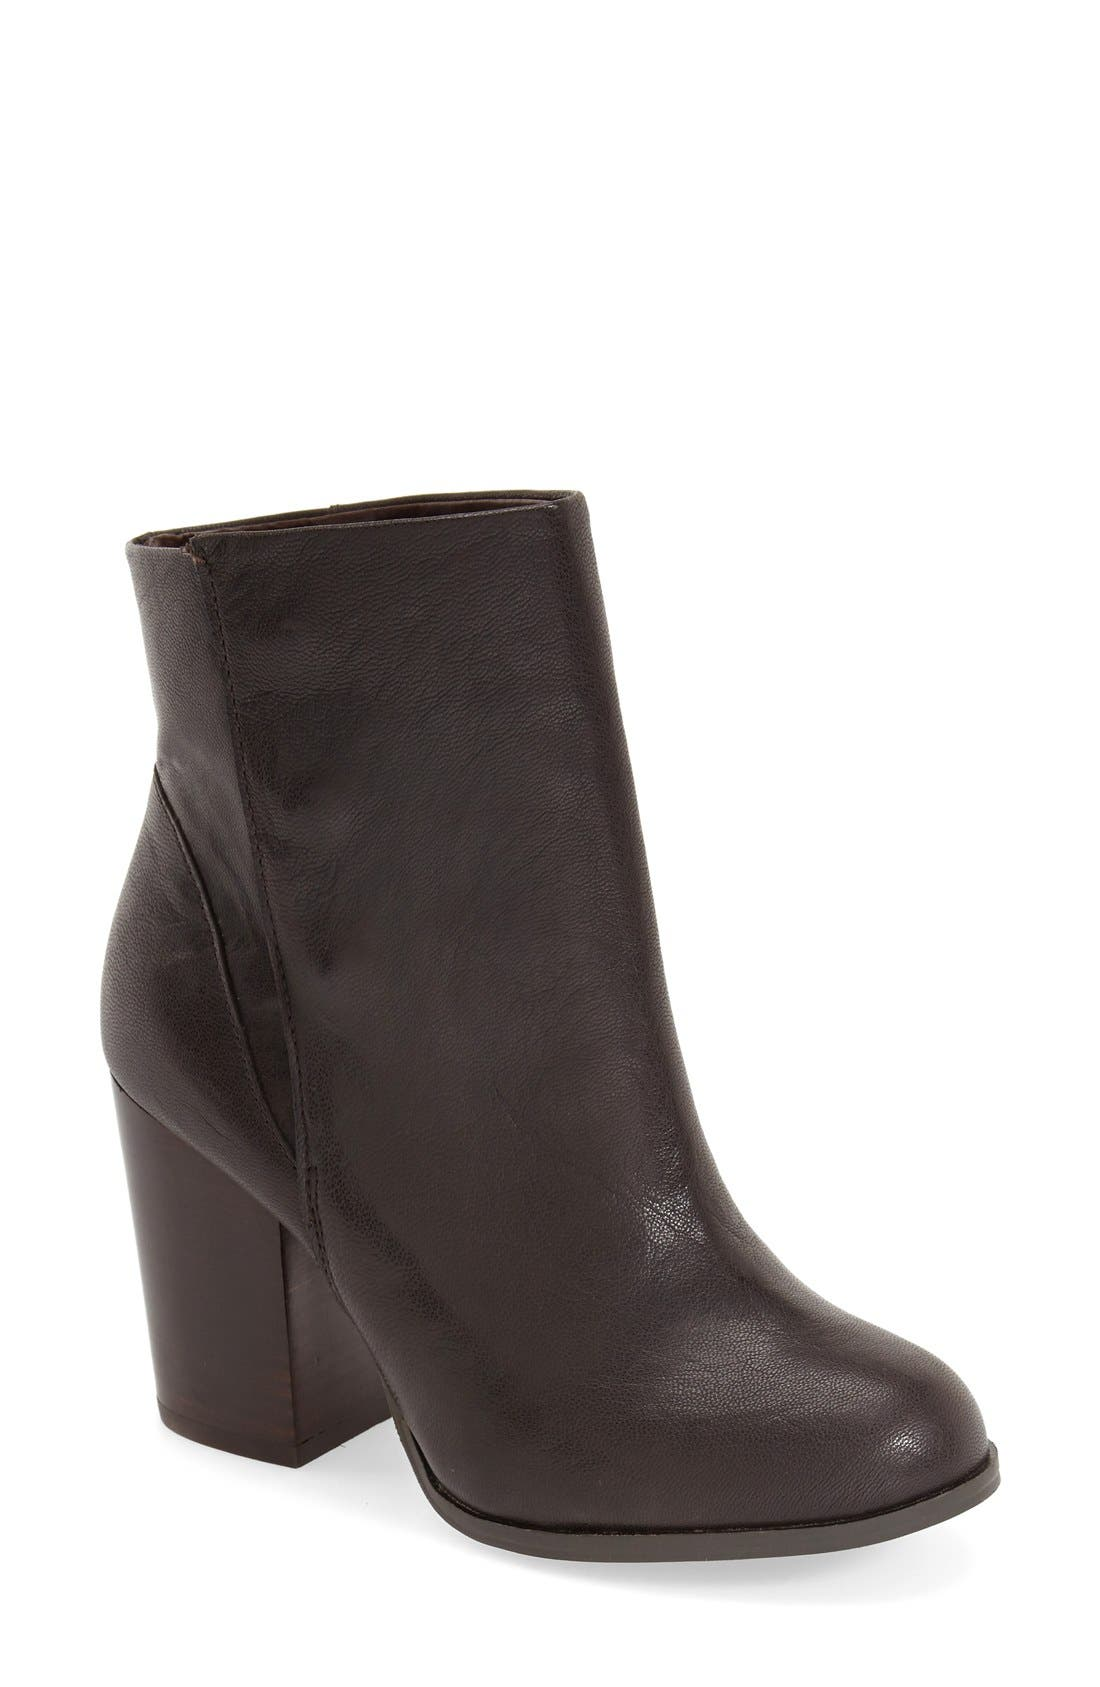 Main Image - Sole Society 'Henley' Bootie (Women)